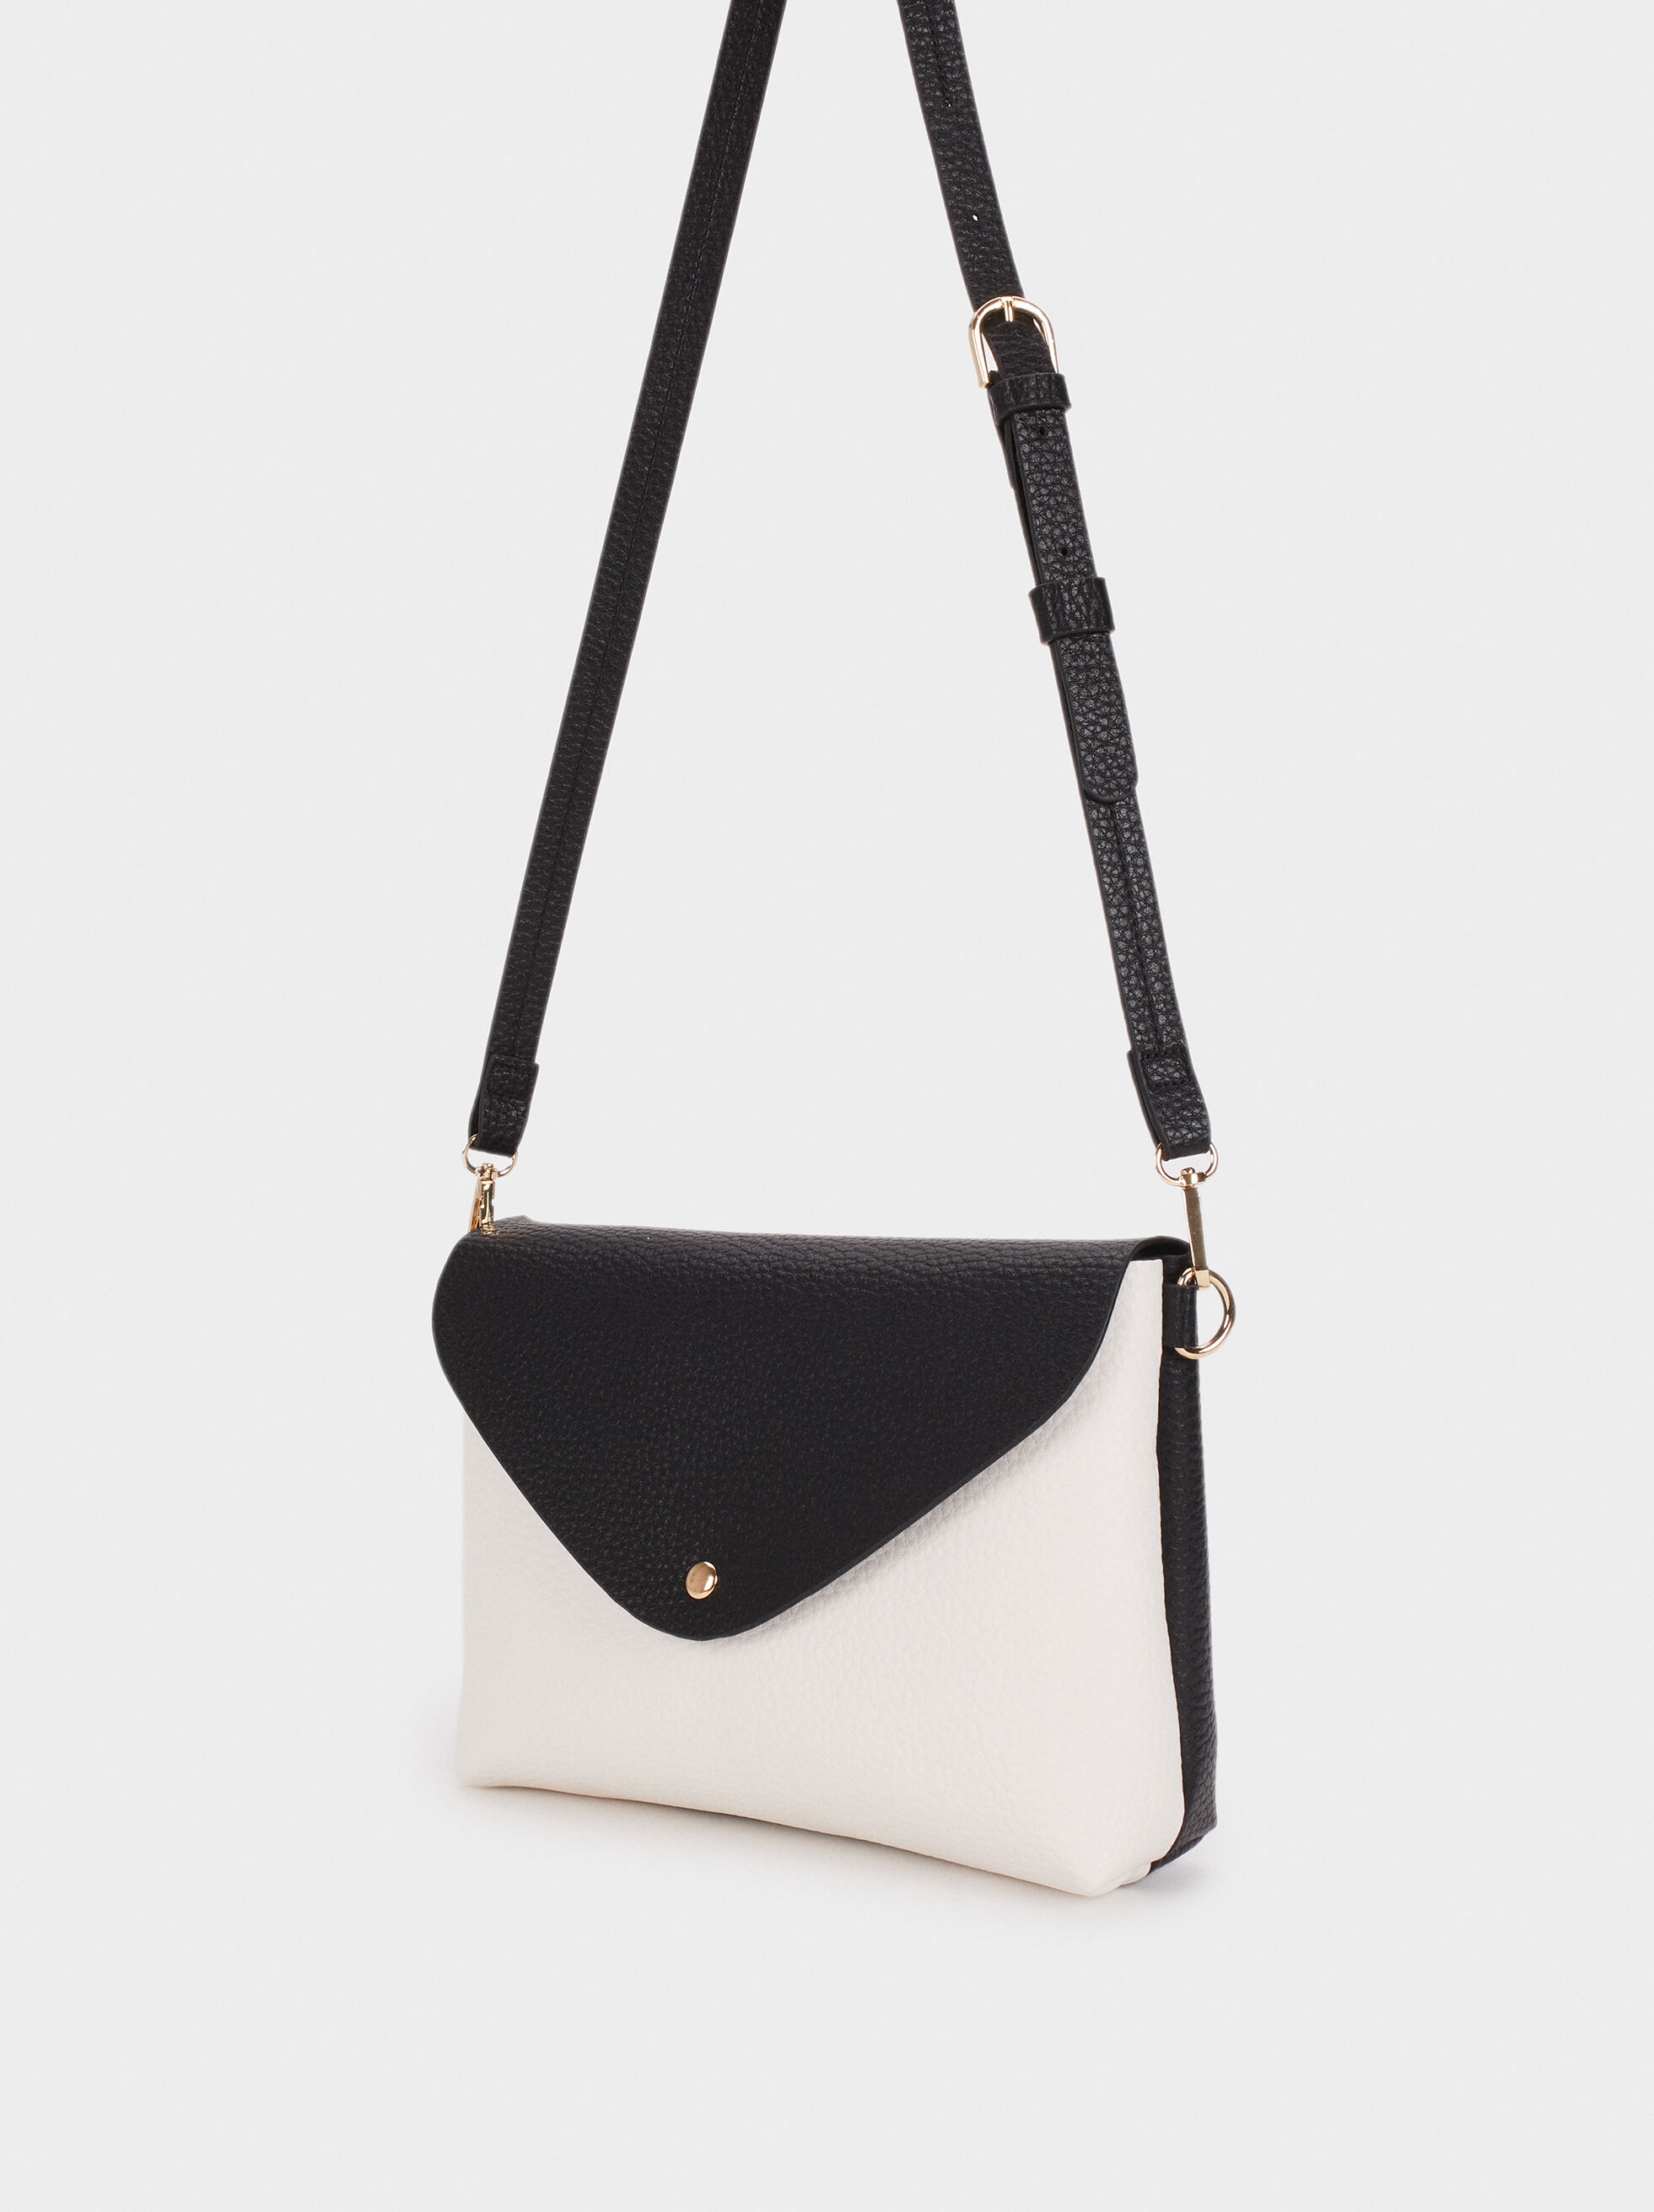 Shoulder Bag With Inner Pocket, Black, hi-res